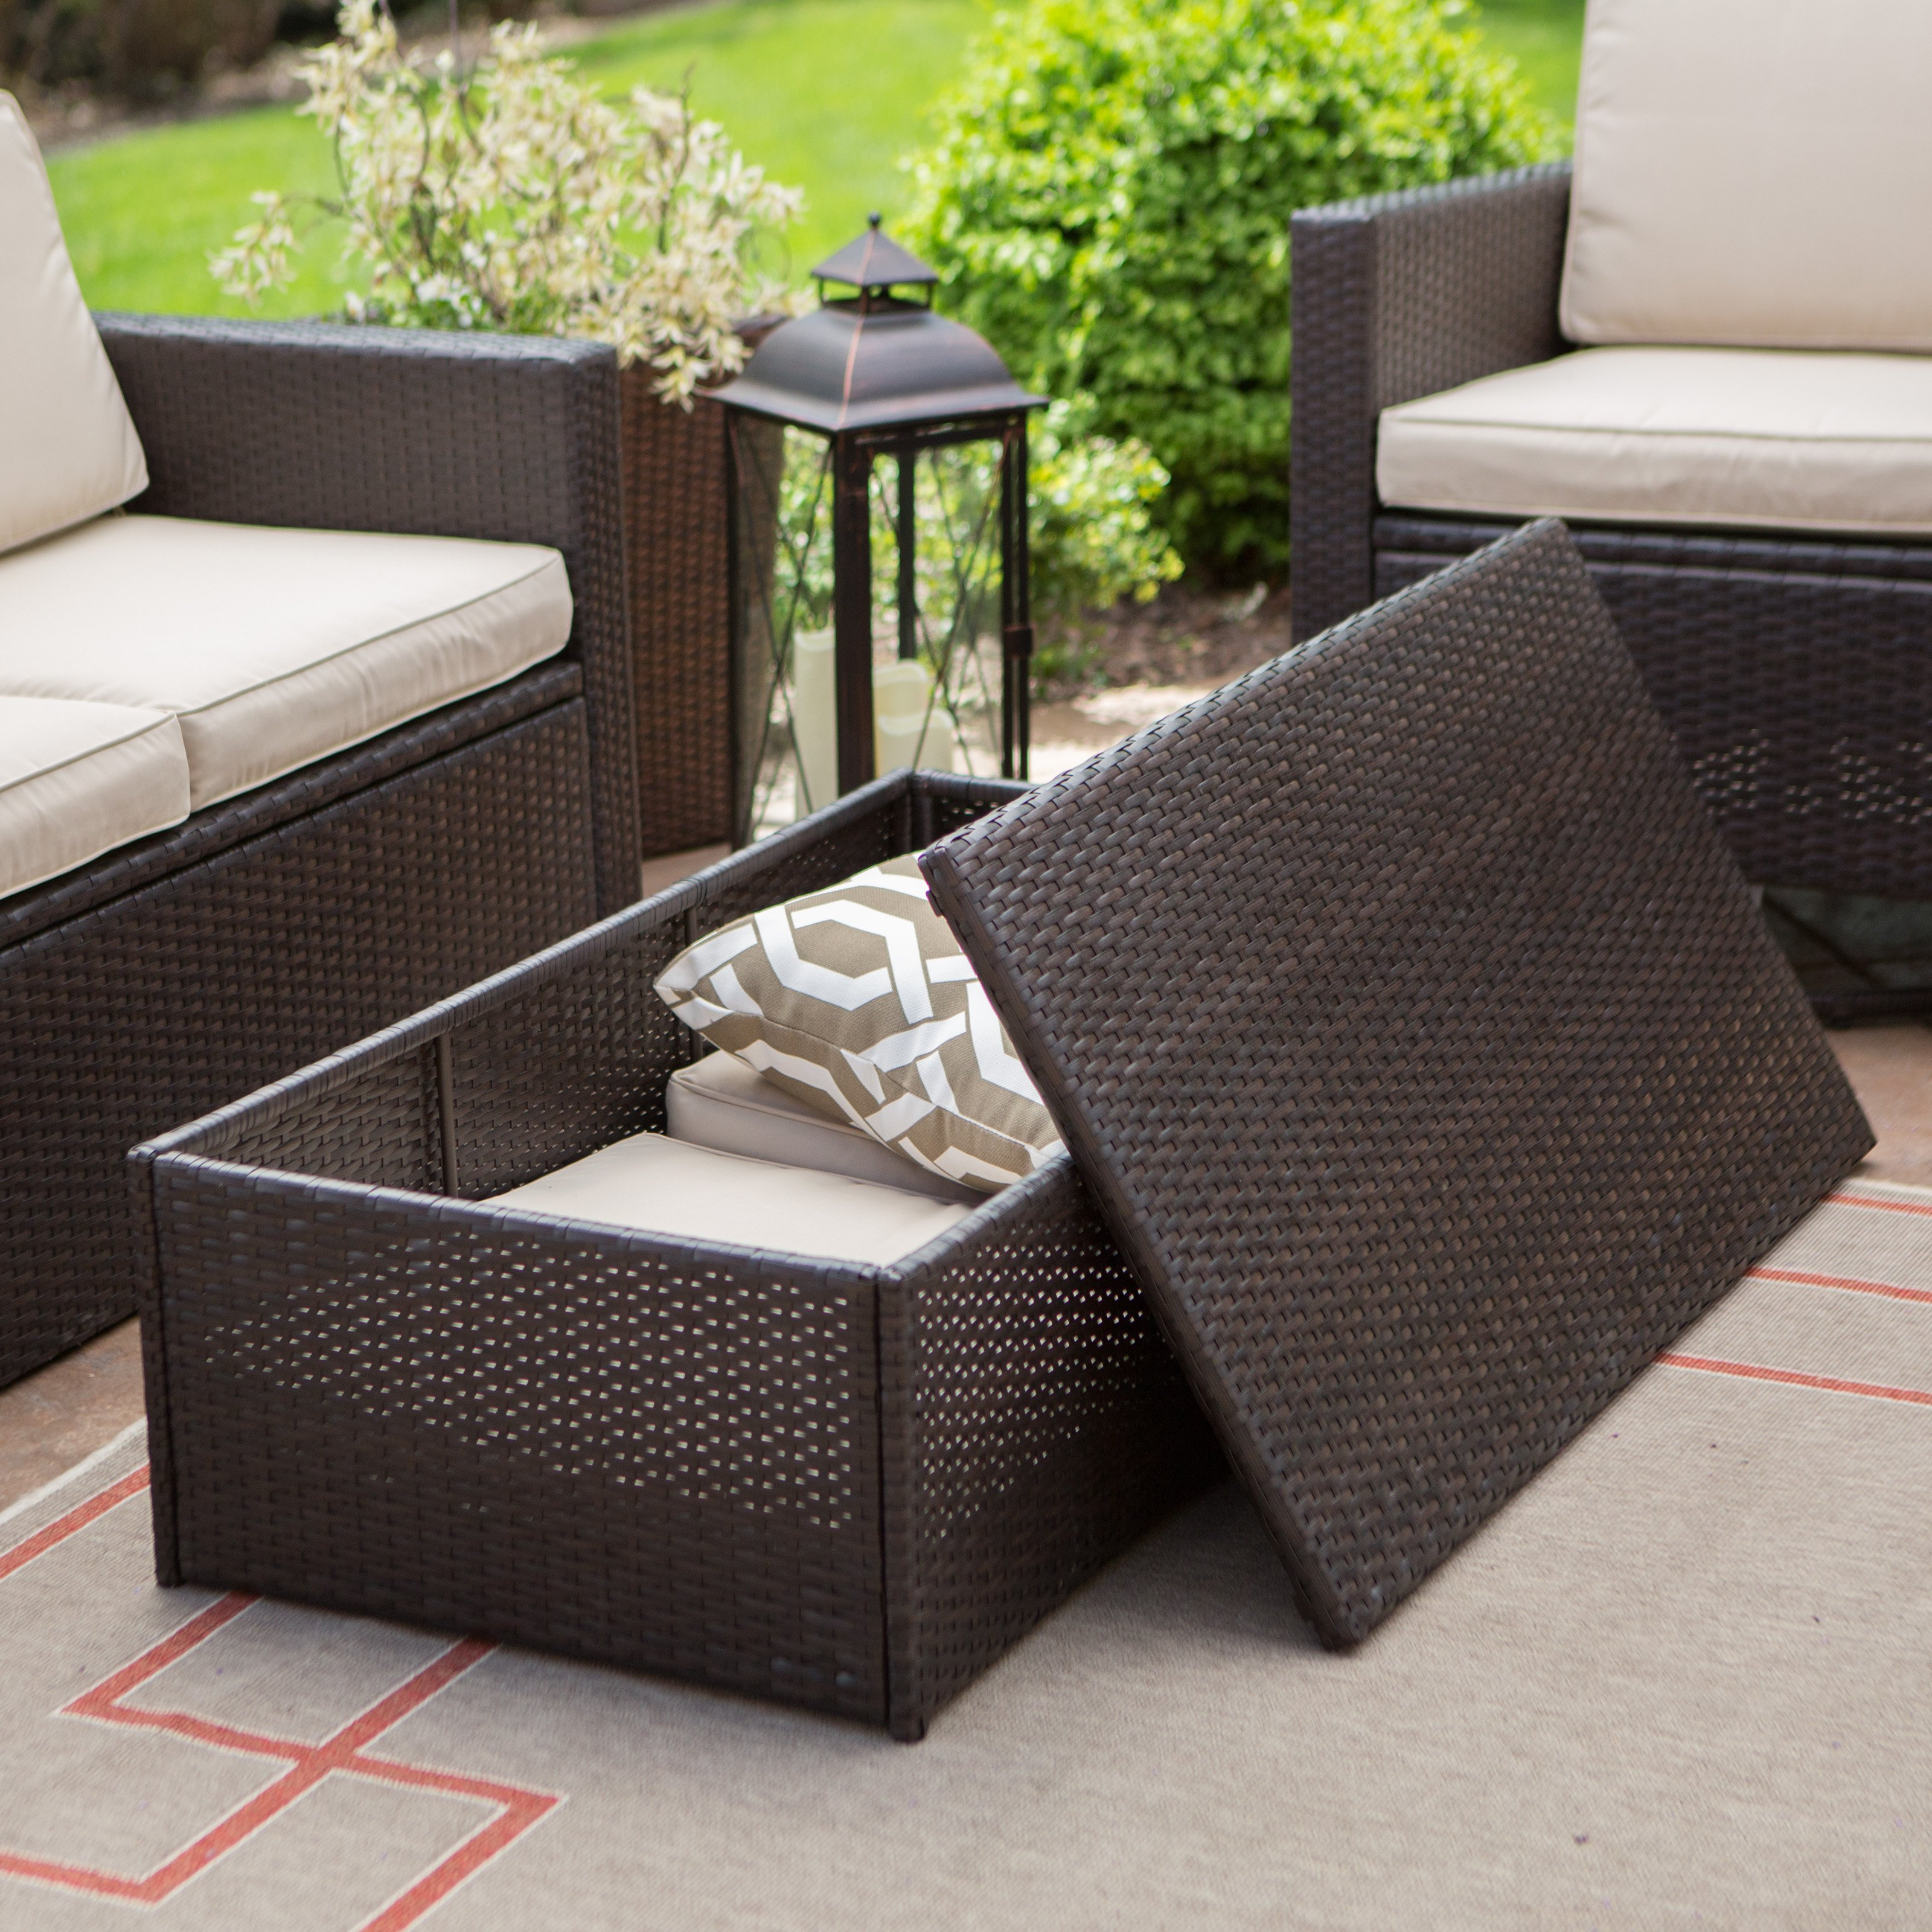 Coral Coast Berea Wicker 4 Piece Conversation Set With Storage   Walmart.com